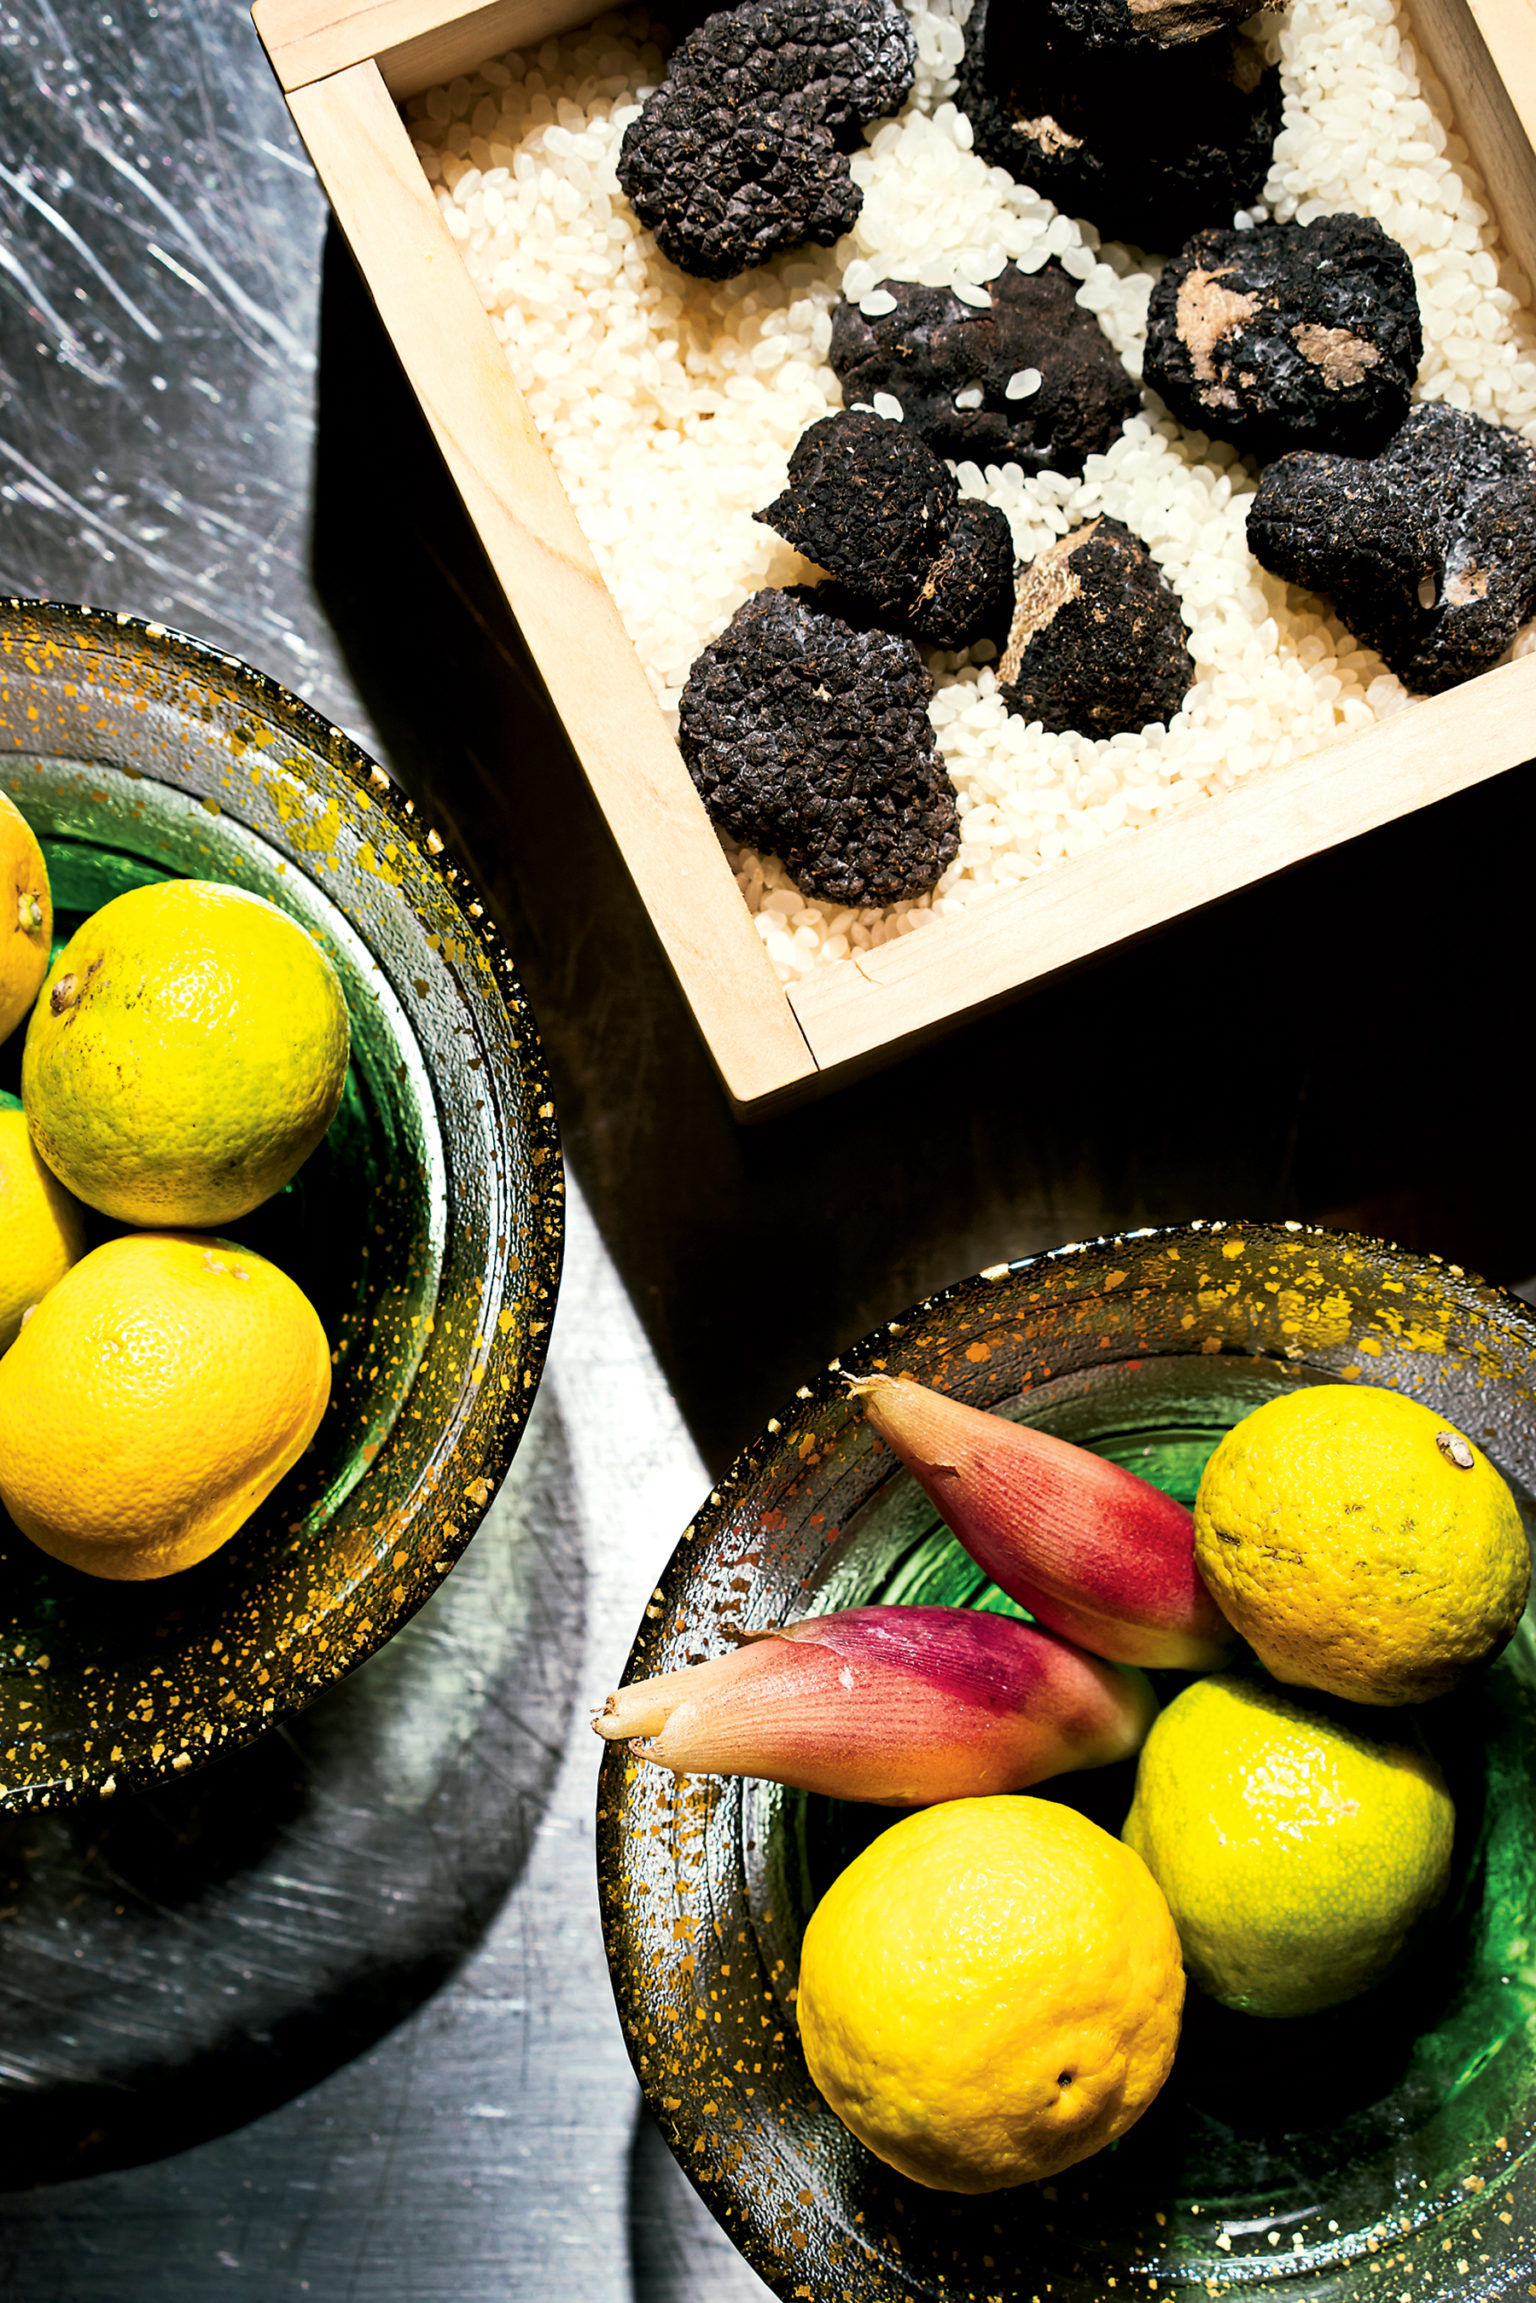 The Tjan brothers love to mix Eastern and Western flavors. They use yuzu, lime-like sudachi, and ginger blossoms from Japan alongside Burgundy black truffles.